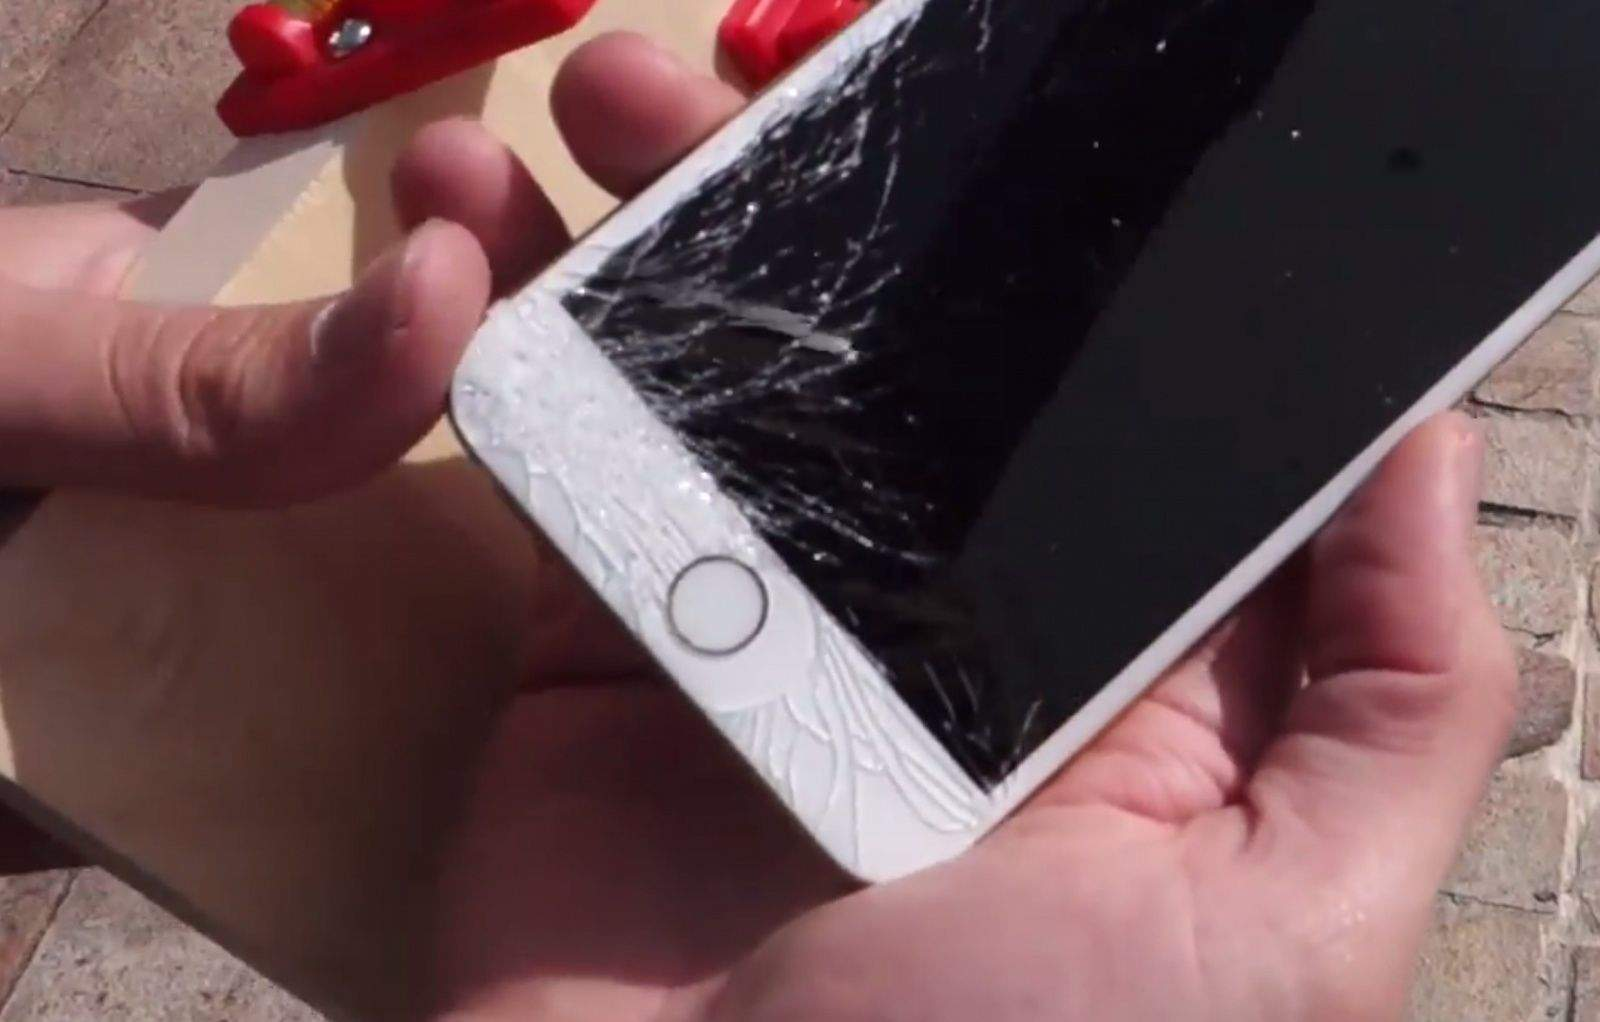 sneakers for cheap 56a47 45acd Apple raises repair costs for iPhone 6 and 6 Plus | Cult of Mac